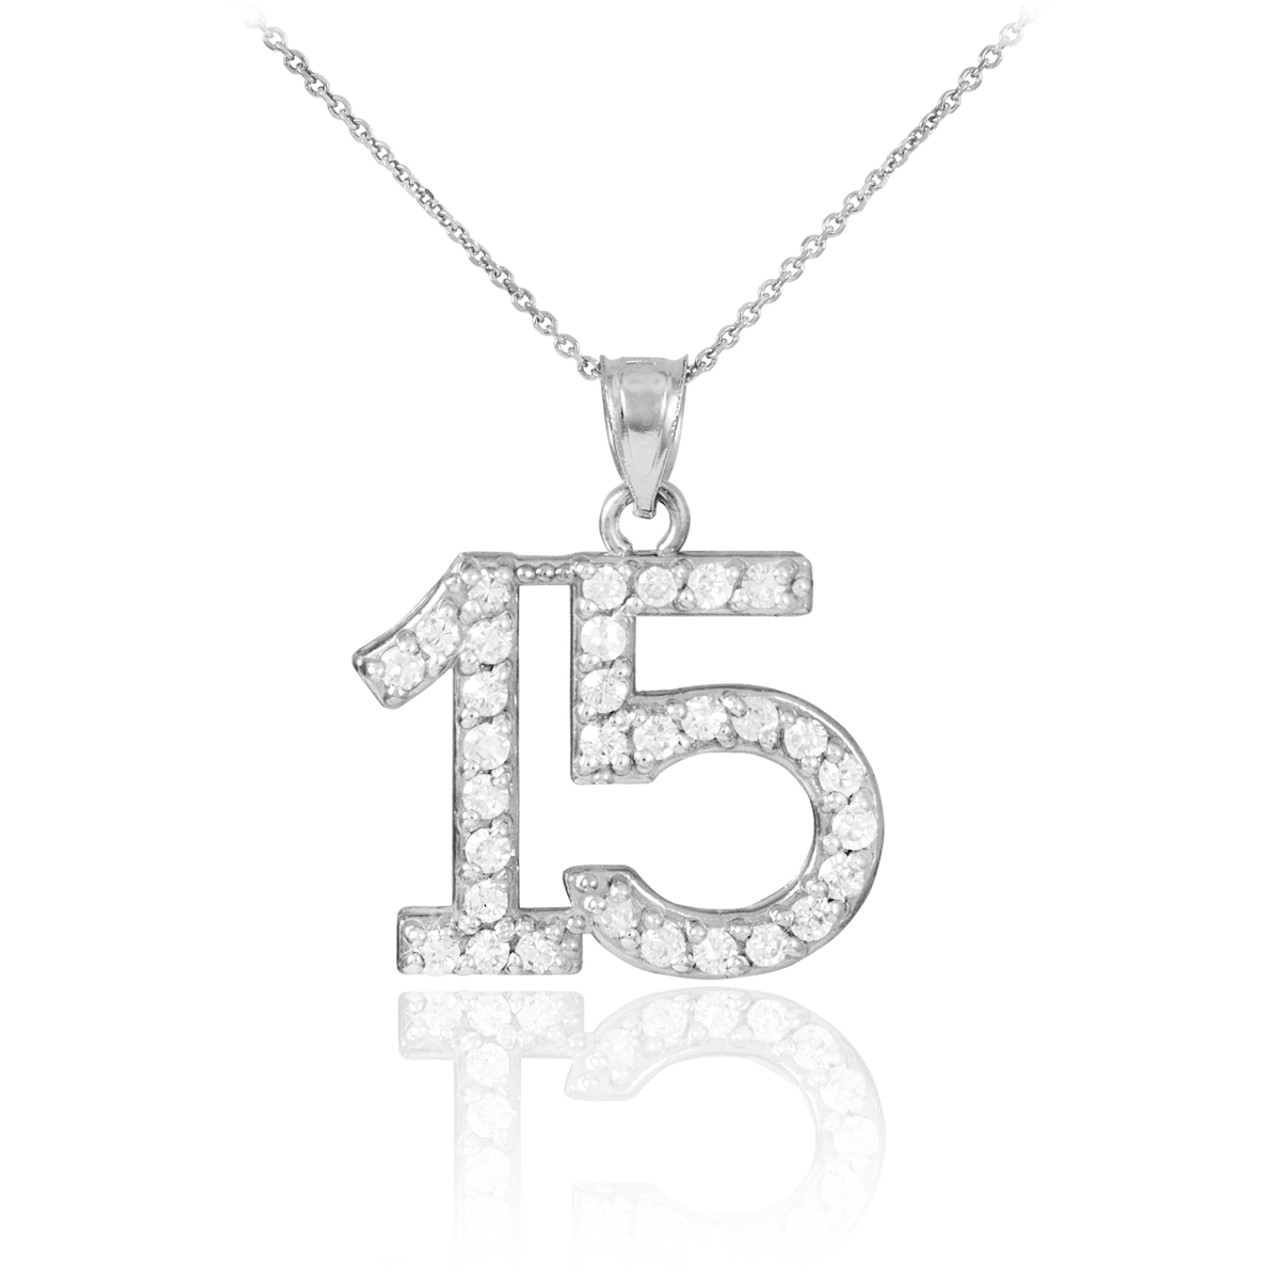 18b29c957 15 Anos Quinceanera Pendnat Necklace with cz in 14k white gold.